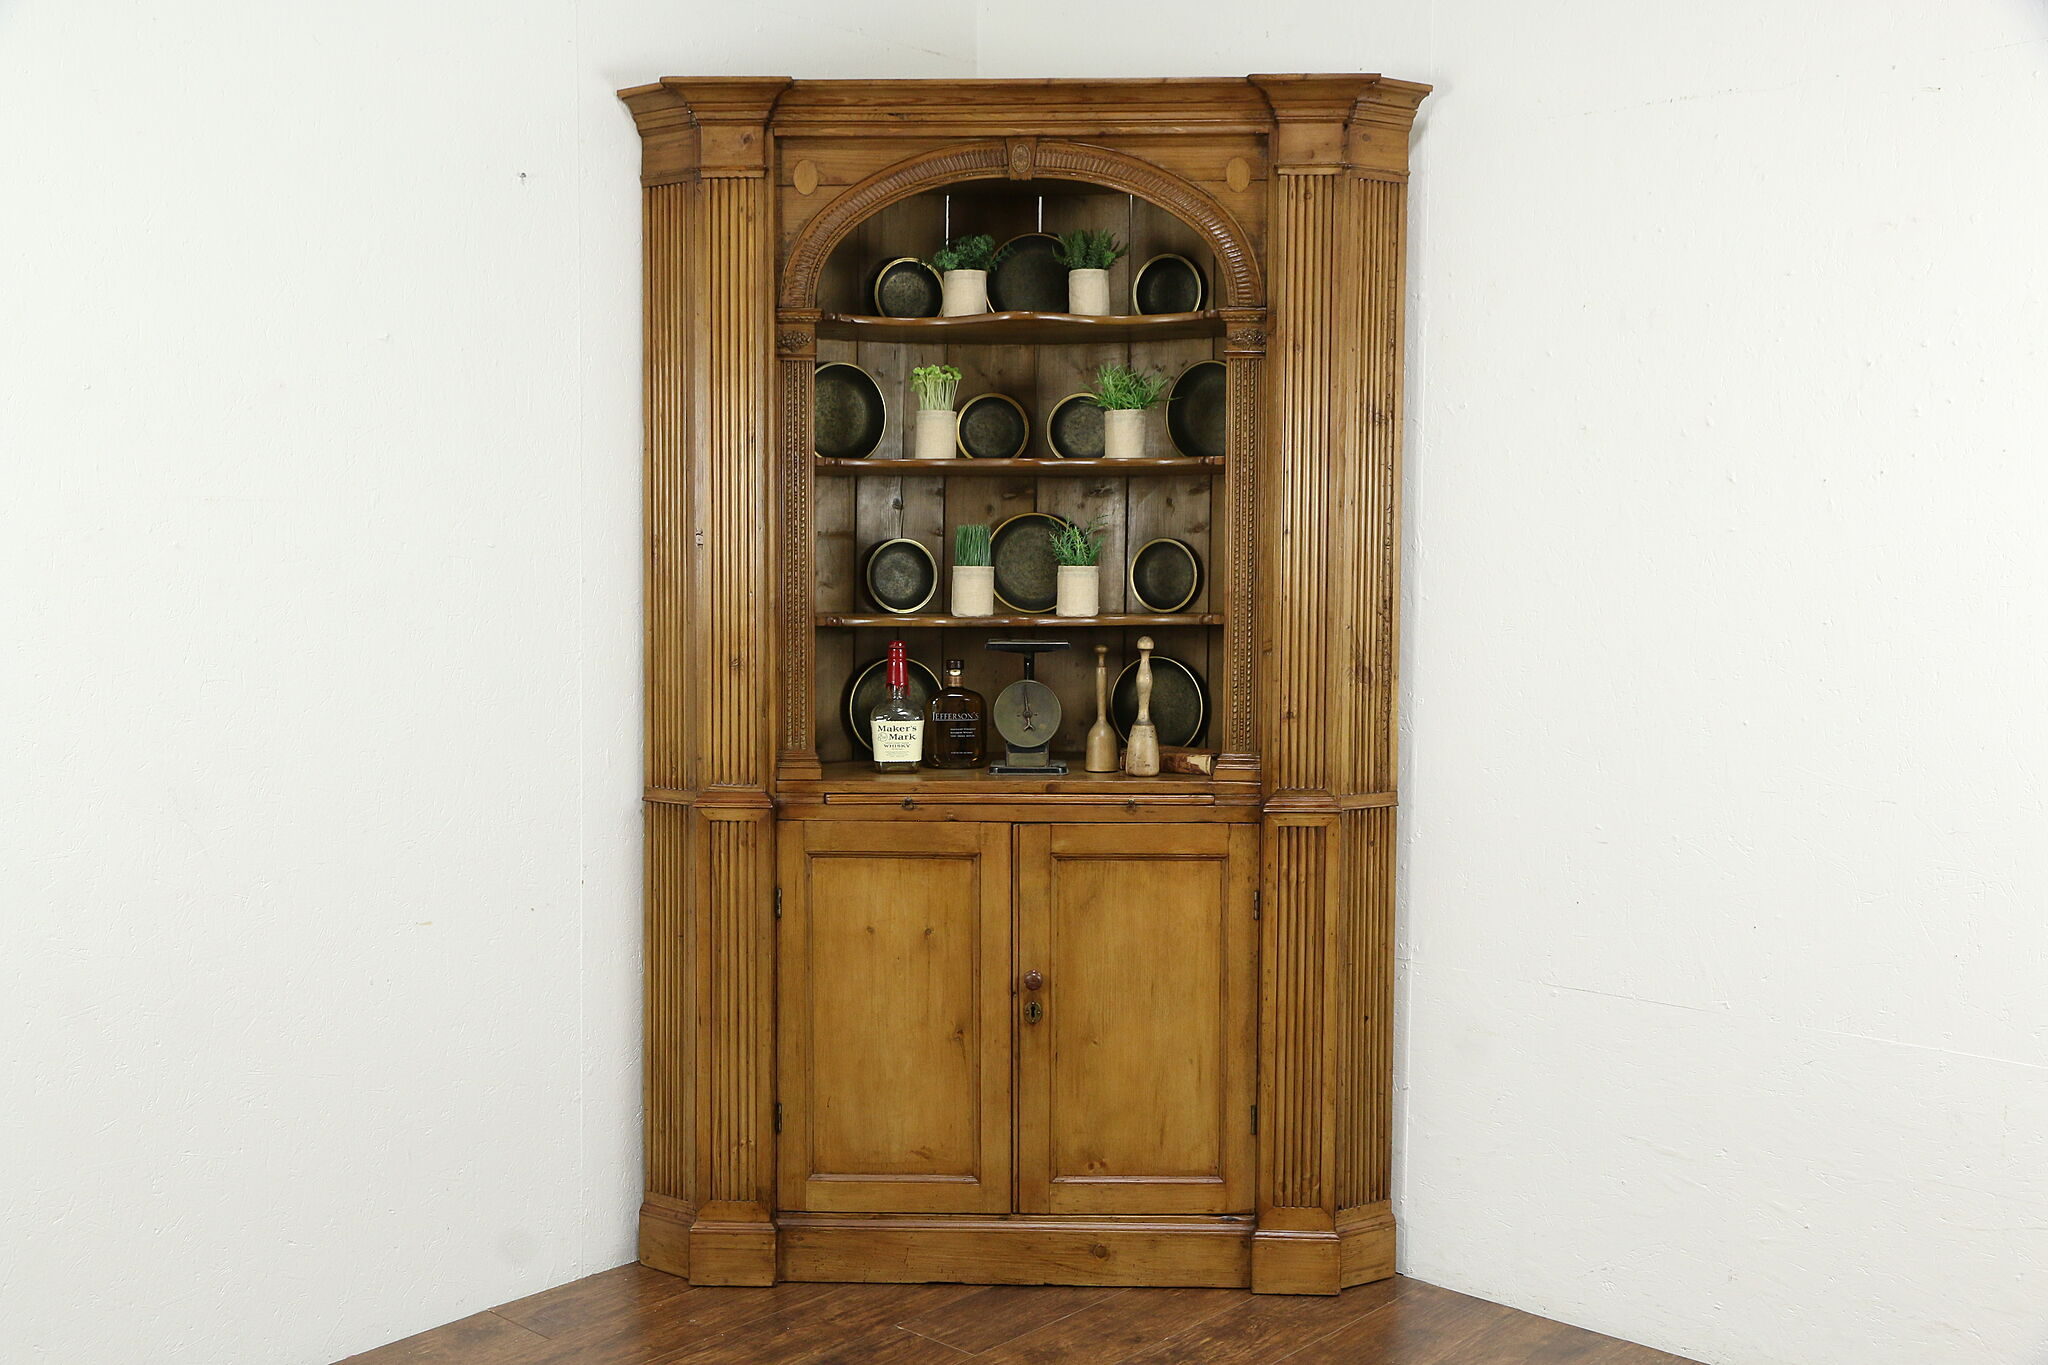 Georgian English Antique 1800 Classical Pine Corner Cupboard Or Cabinet 34940 Harp Gallery Antiques Furniture